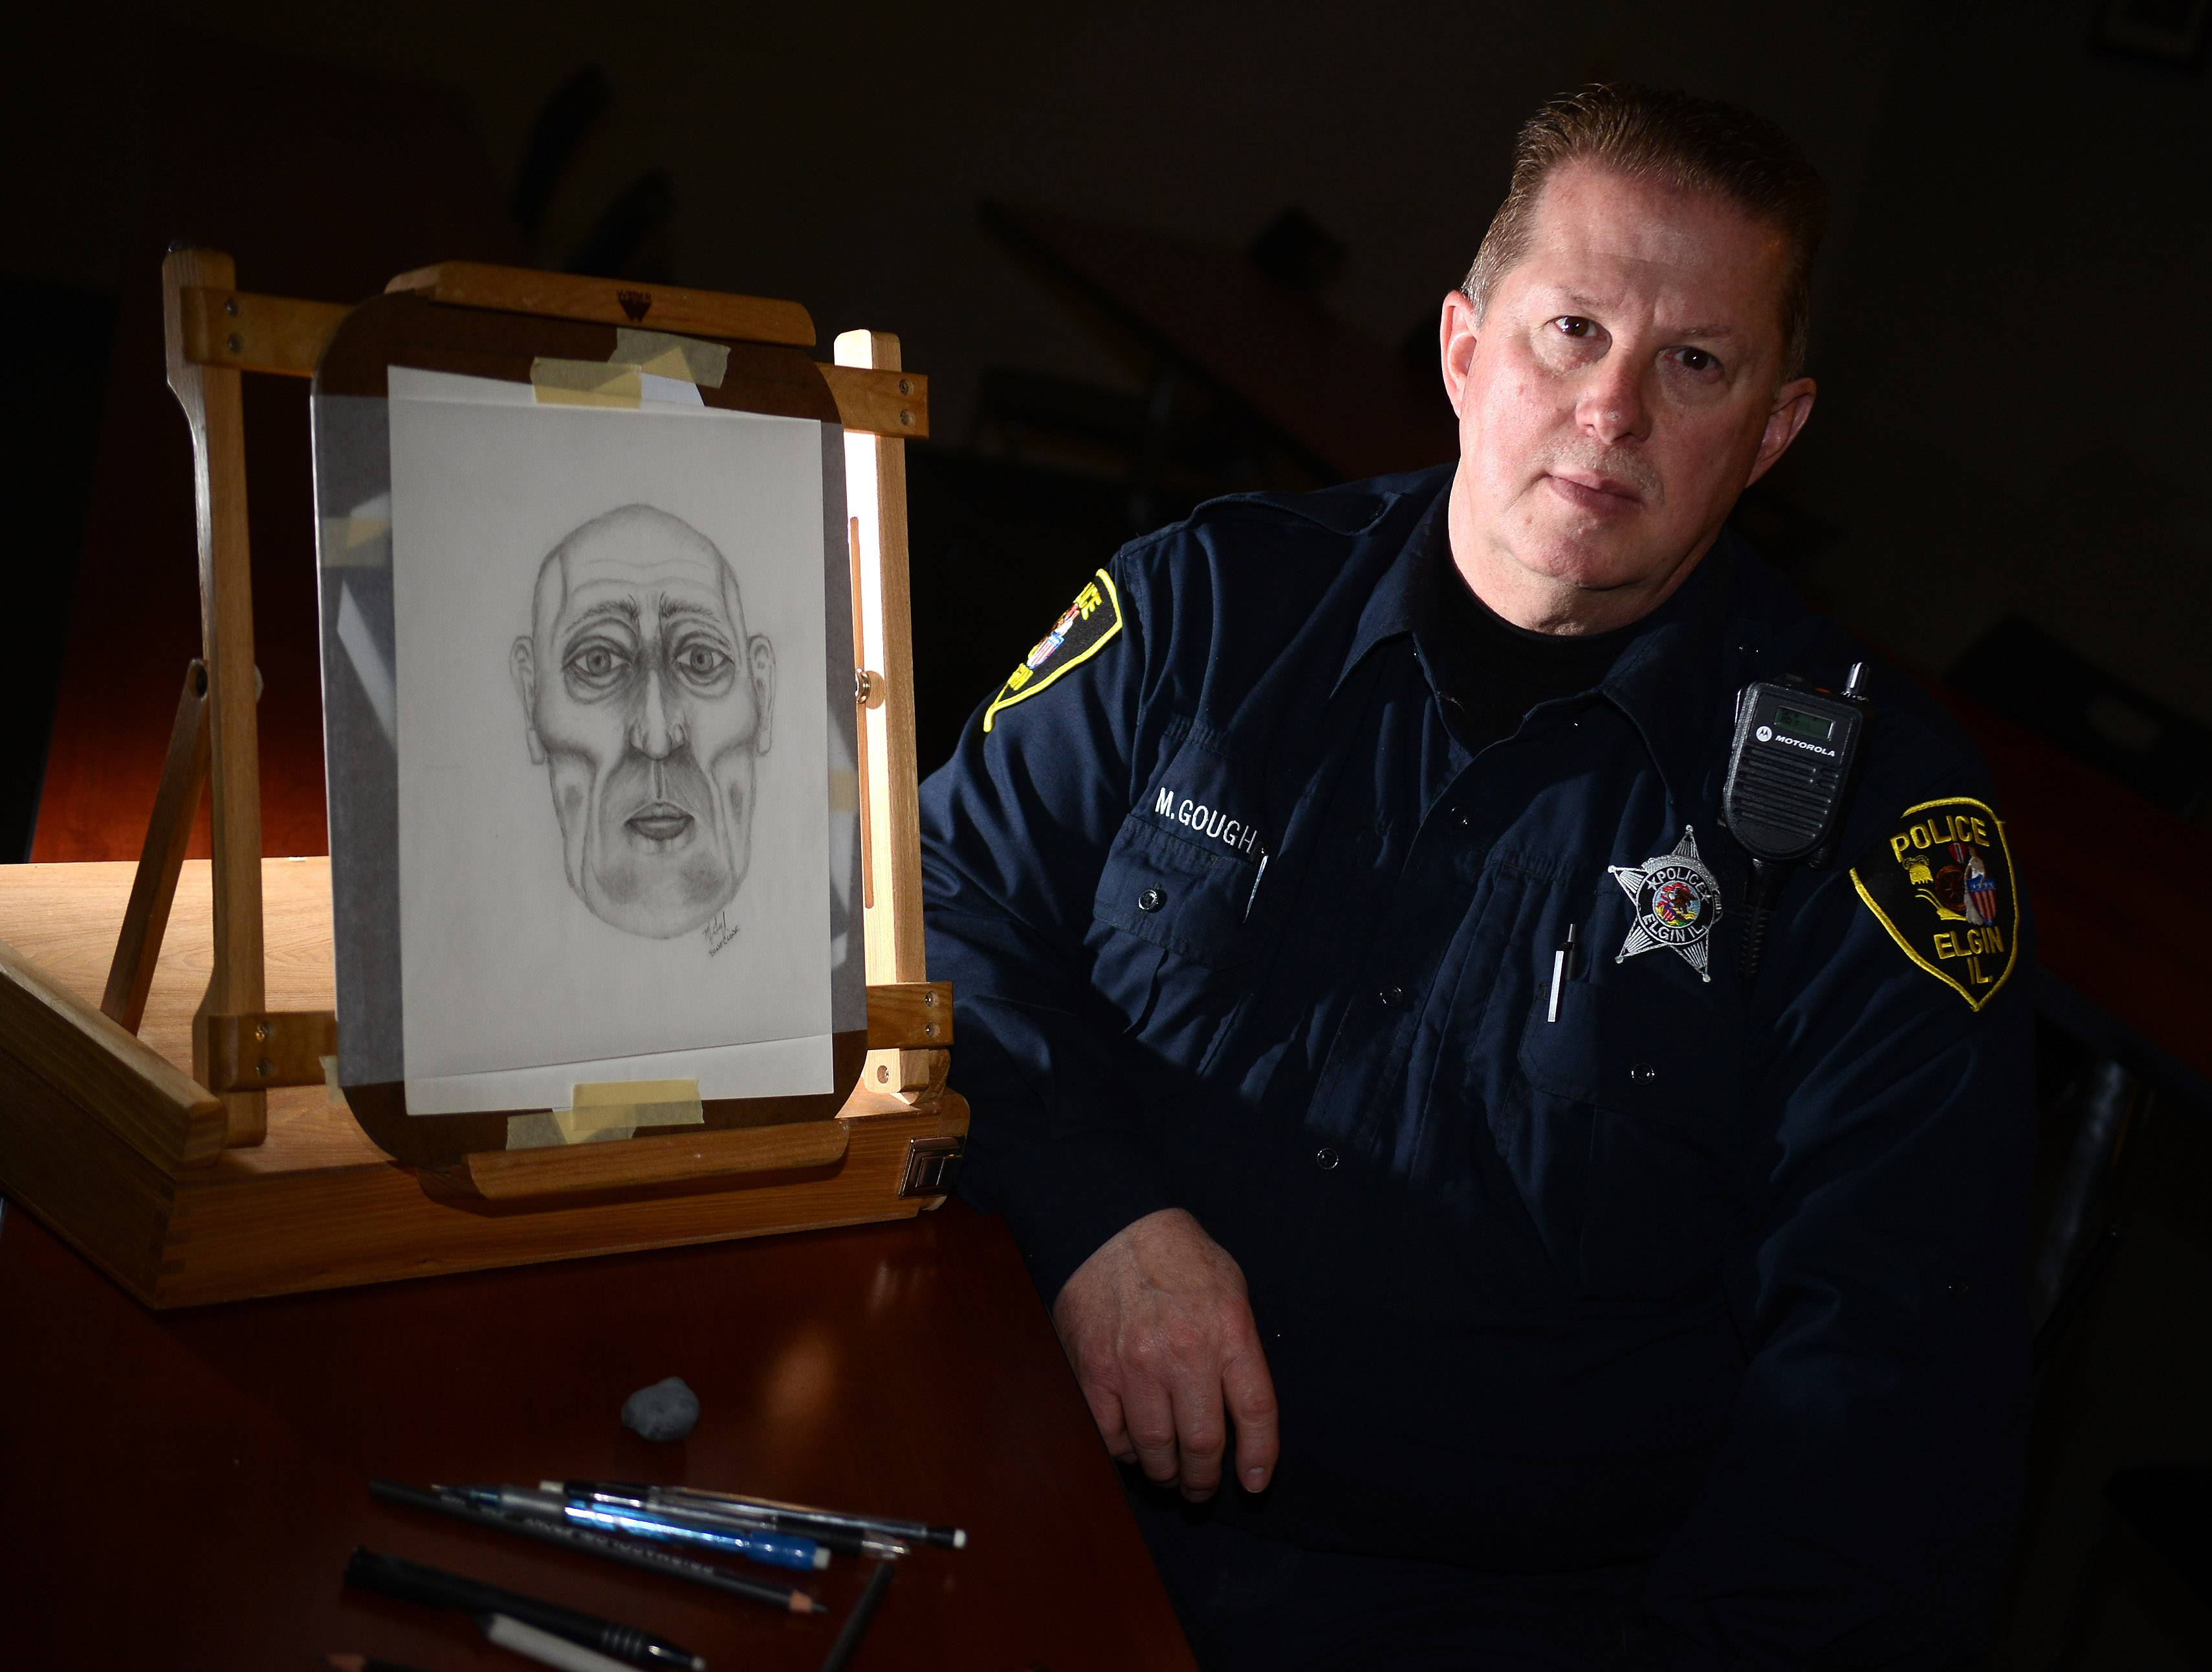 Elgin Police Department sketch artist officer Mike Gough is retiring April 4 after 30 years on the job. The sketch at left is one he made from a skull. Composites, on the other hand, are based solely on victims and witnesses' accounts.